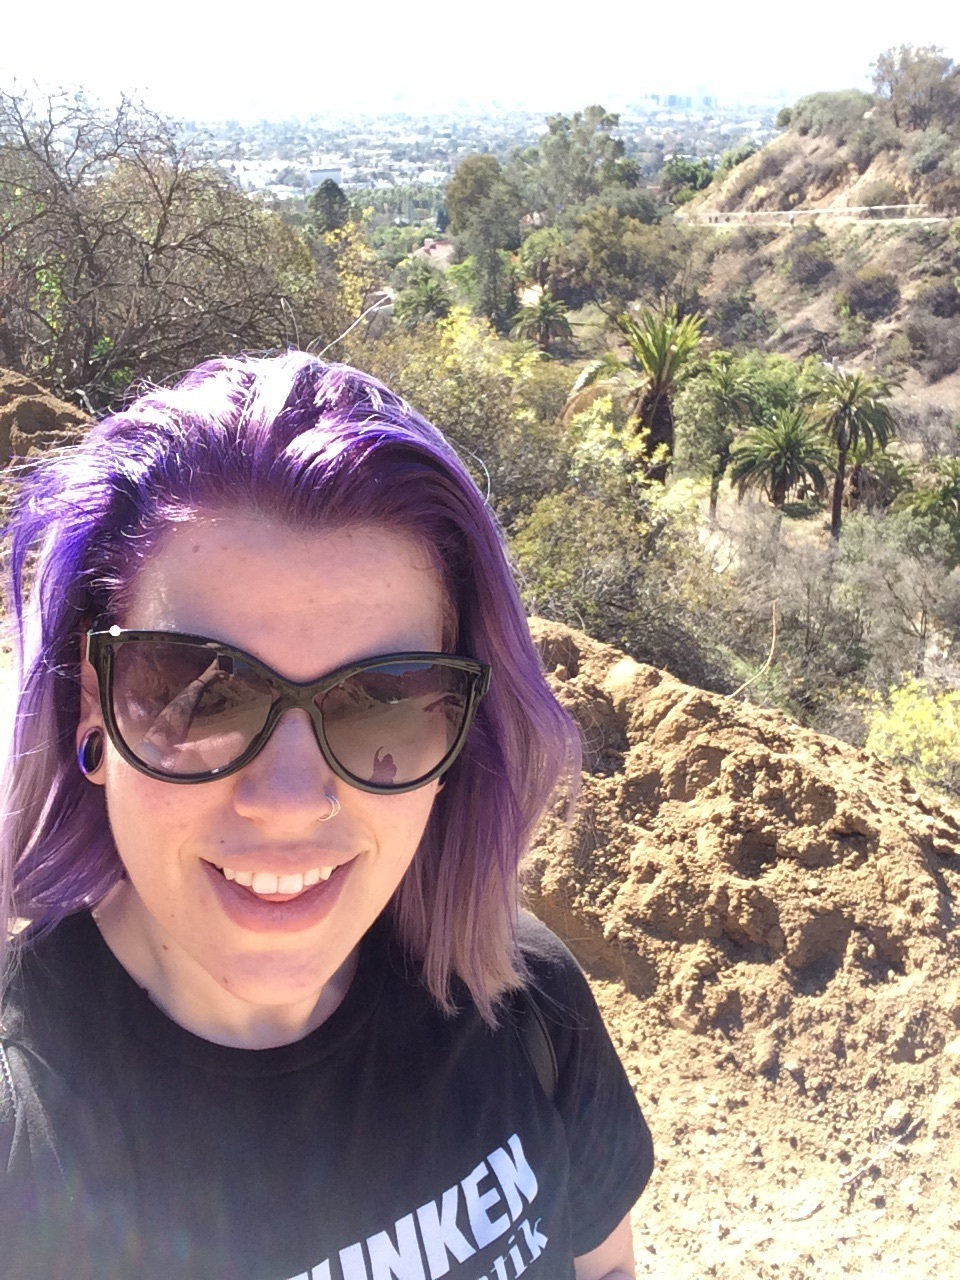 Getting my hike on in sunny Los Angeles ☀️